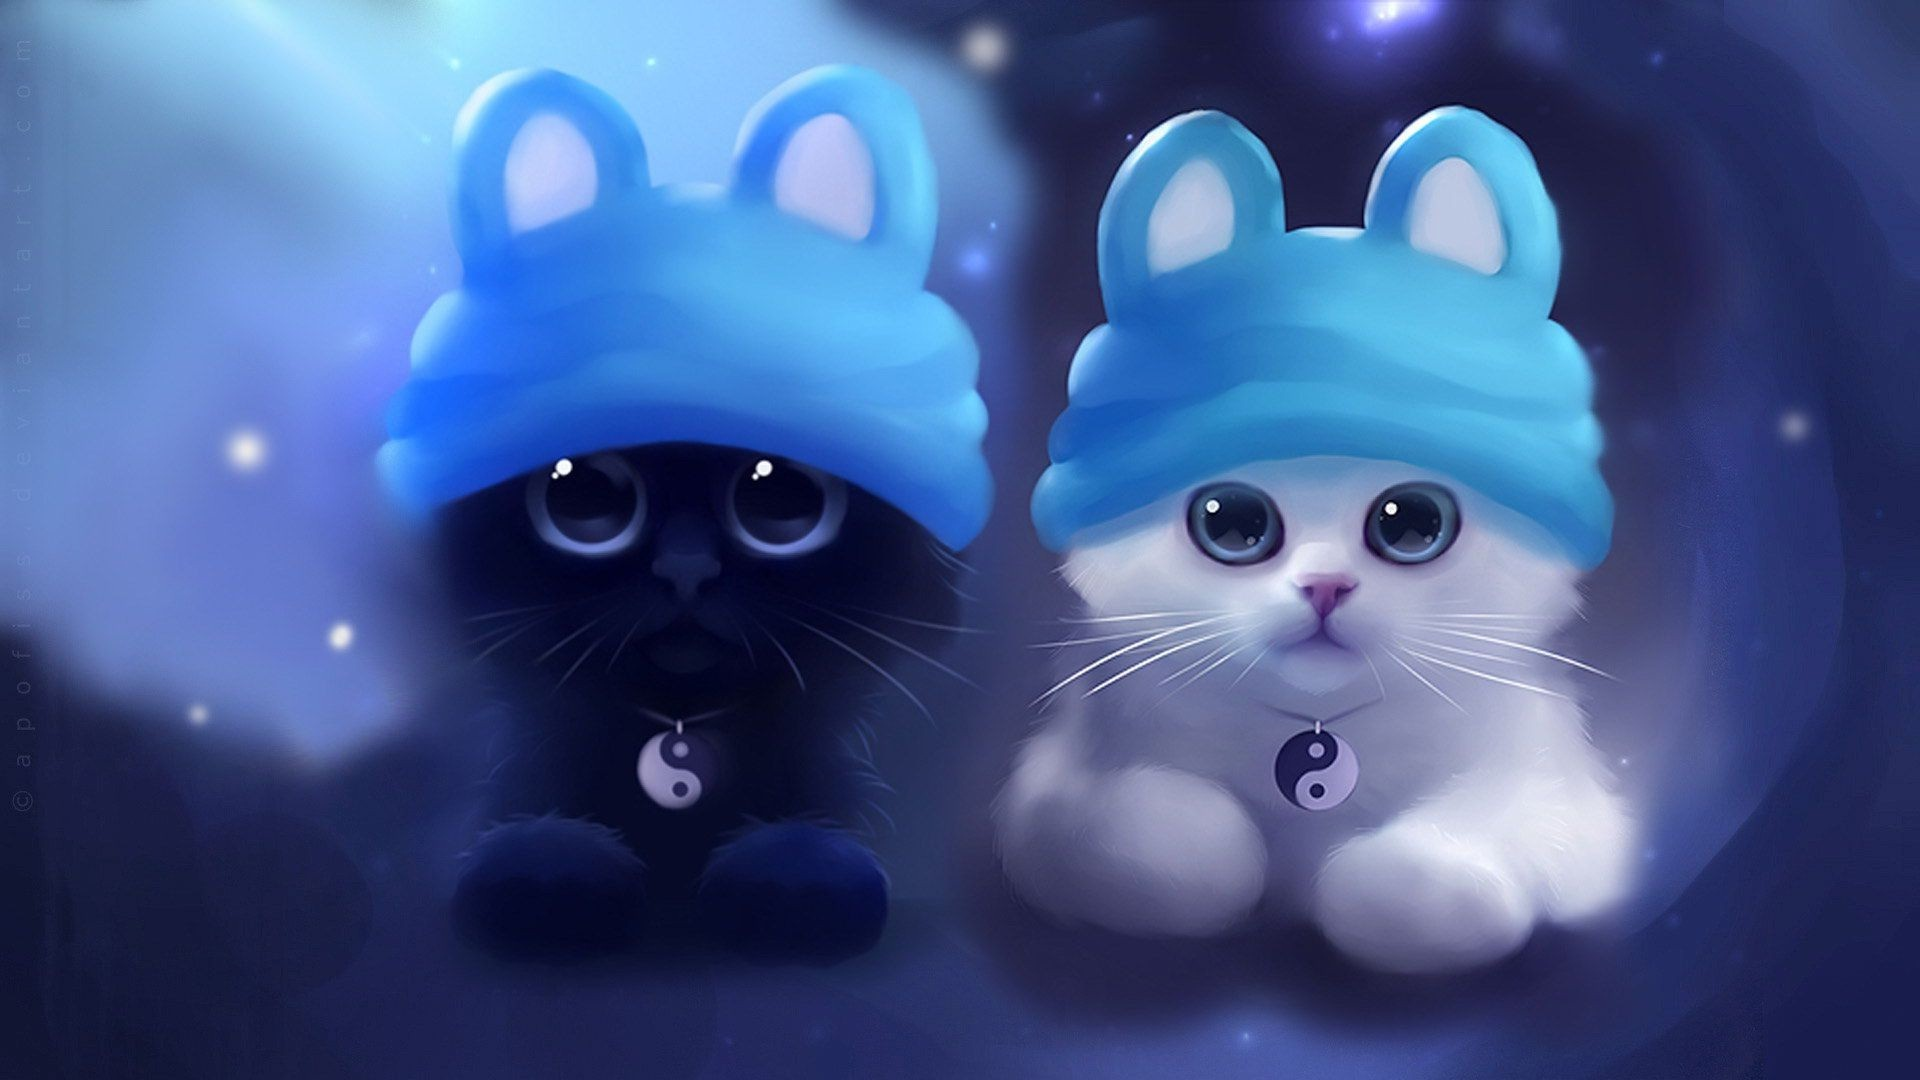 Sweet-and-cute-cat-fantasy-image-1920×1080-wallpaper-wpc9009632